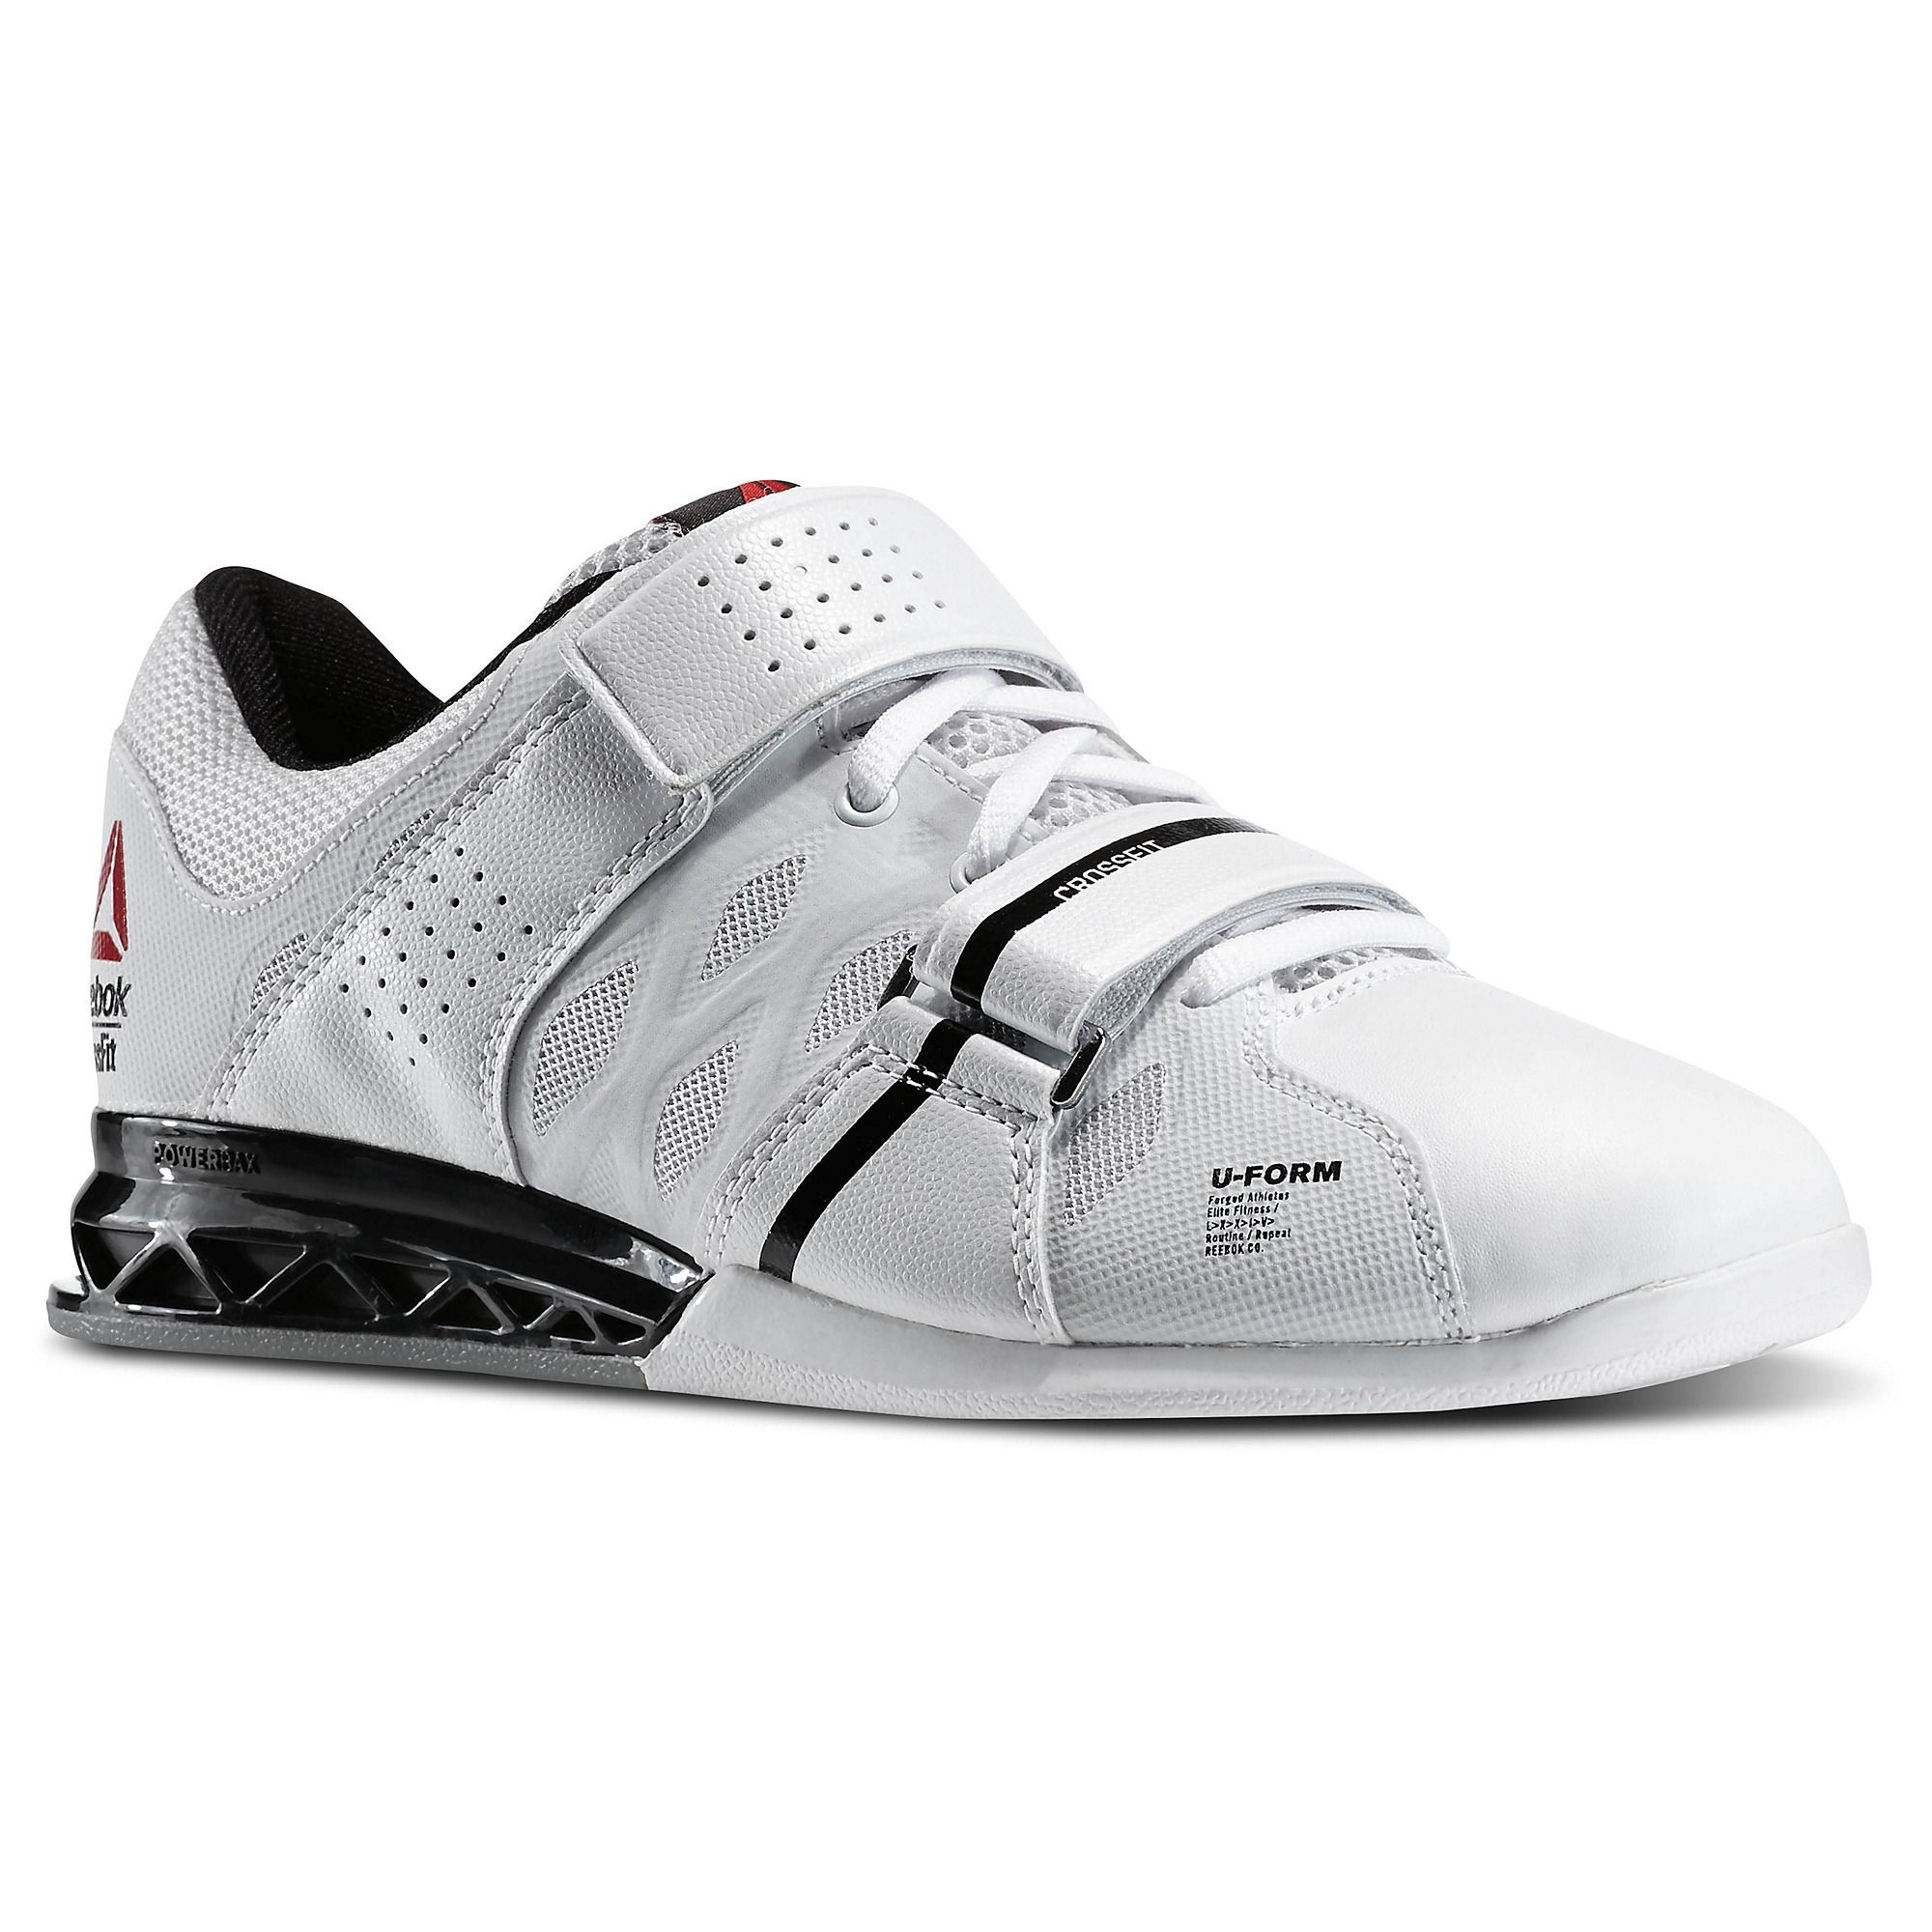 fa25627668d Just ordered those reebok crossfit lifter plus reebok us i cant wait to get  them jpg